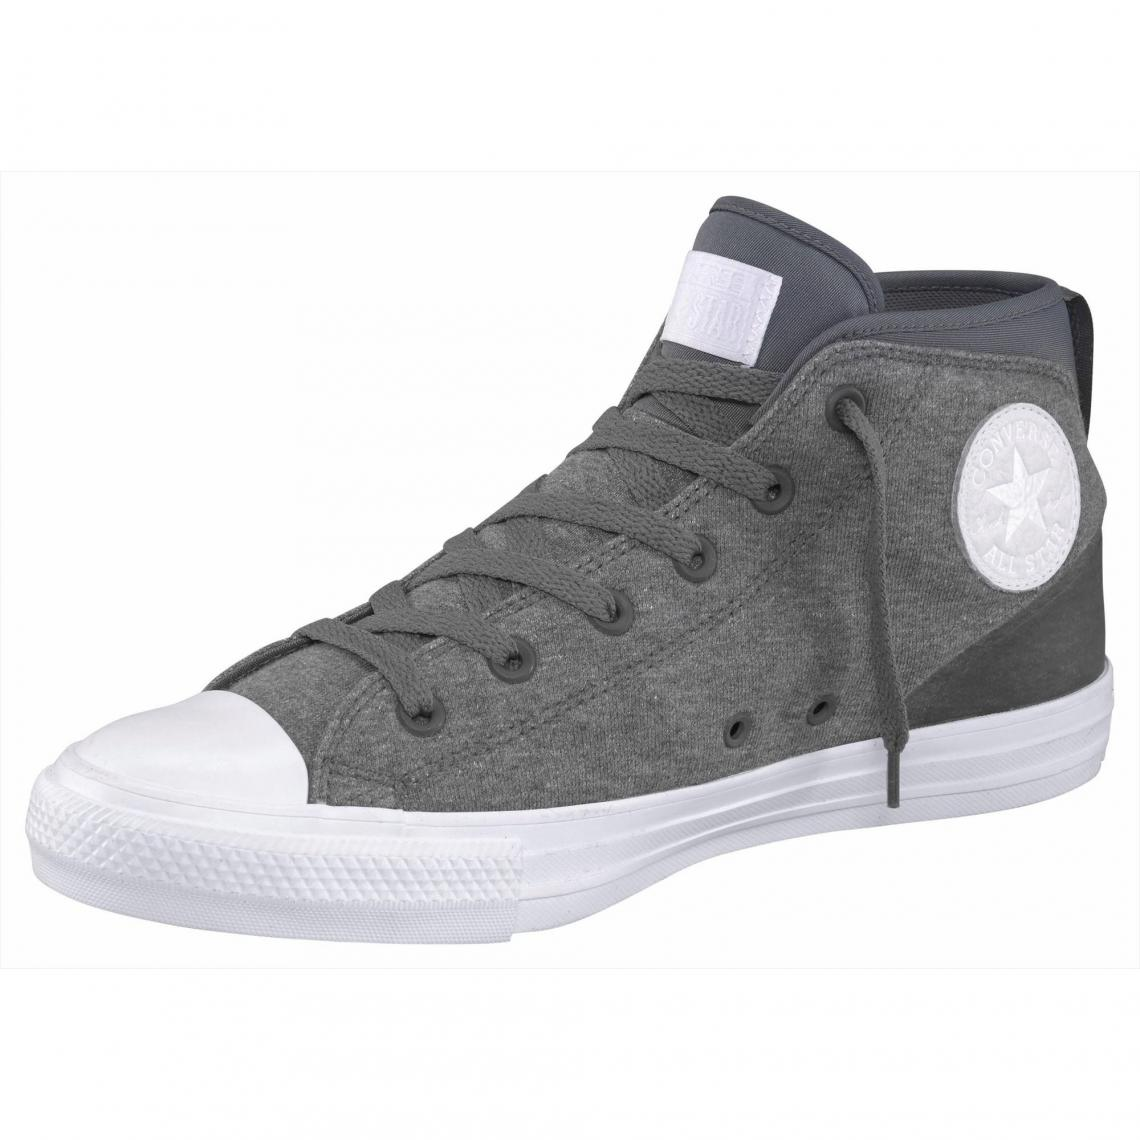 0c1ef8cd46287 Baskets montantes homme Converse Chuck Taylor All Star Syde Street - Gris  Converse Homme